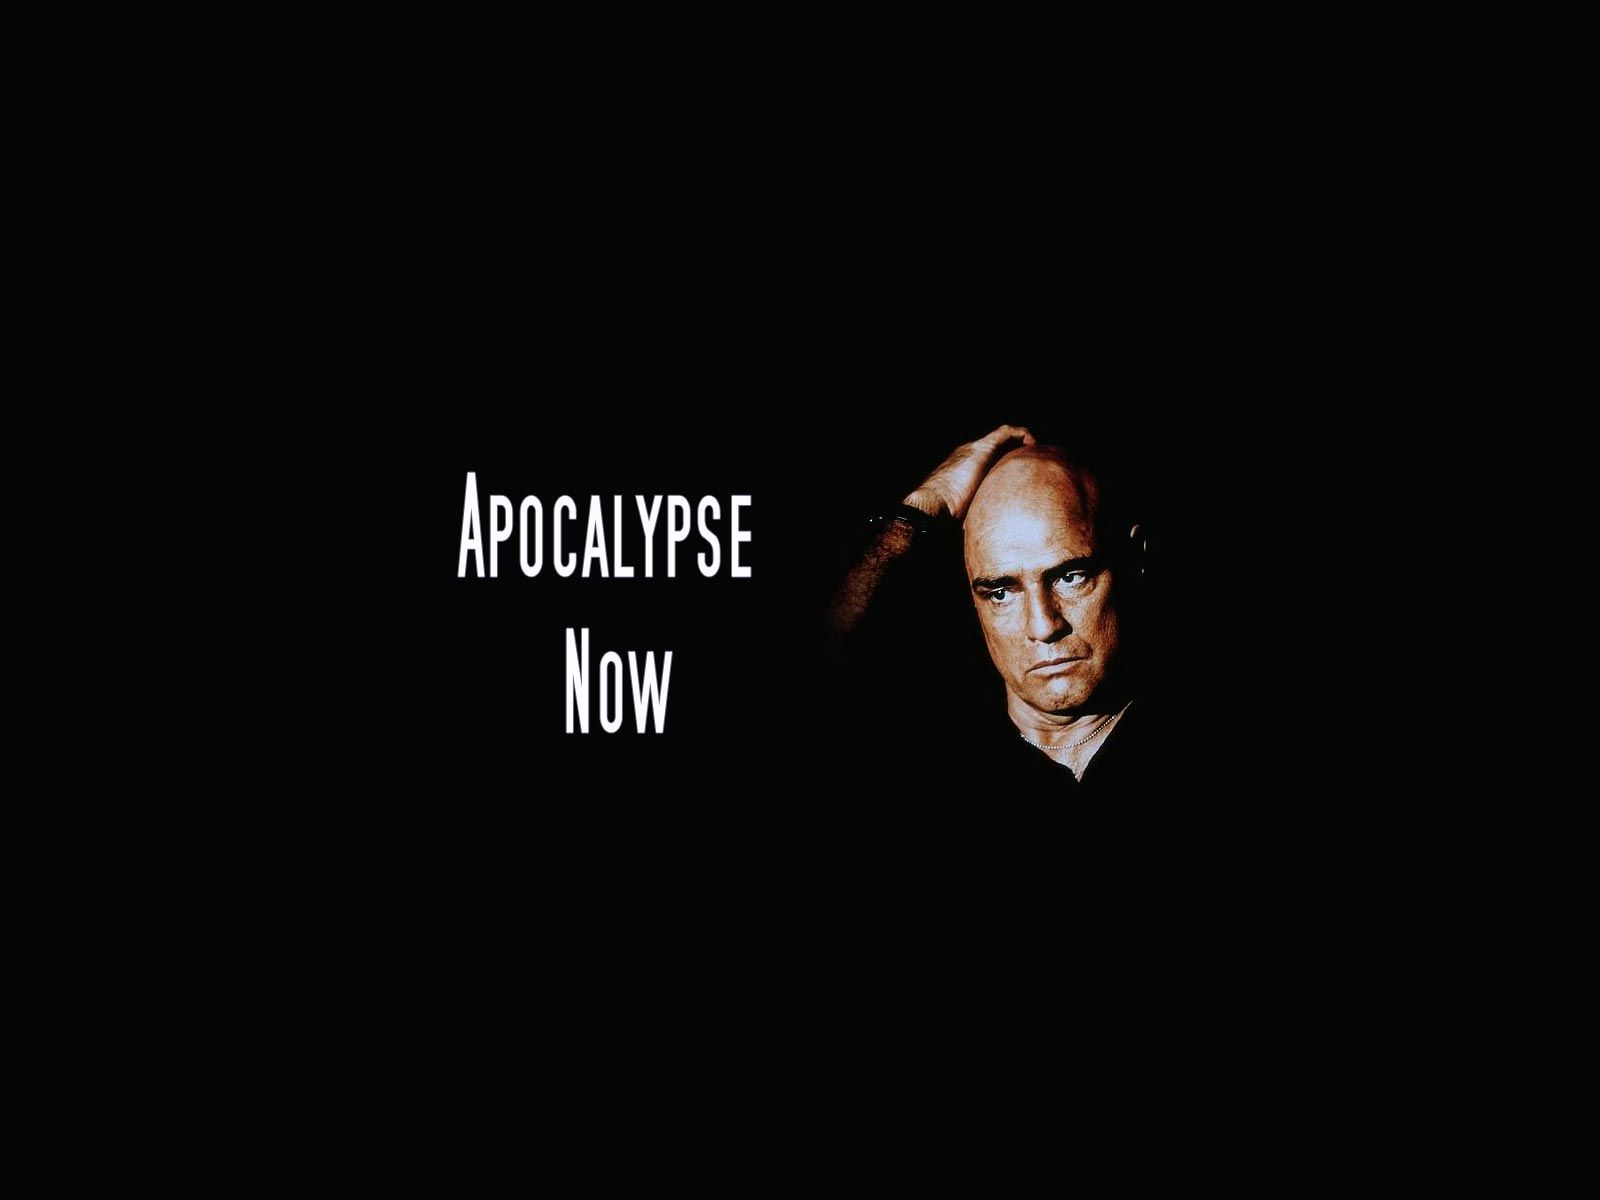 Apocalypse Now Wallpapers 1600x1200